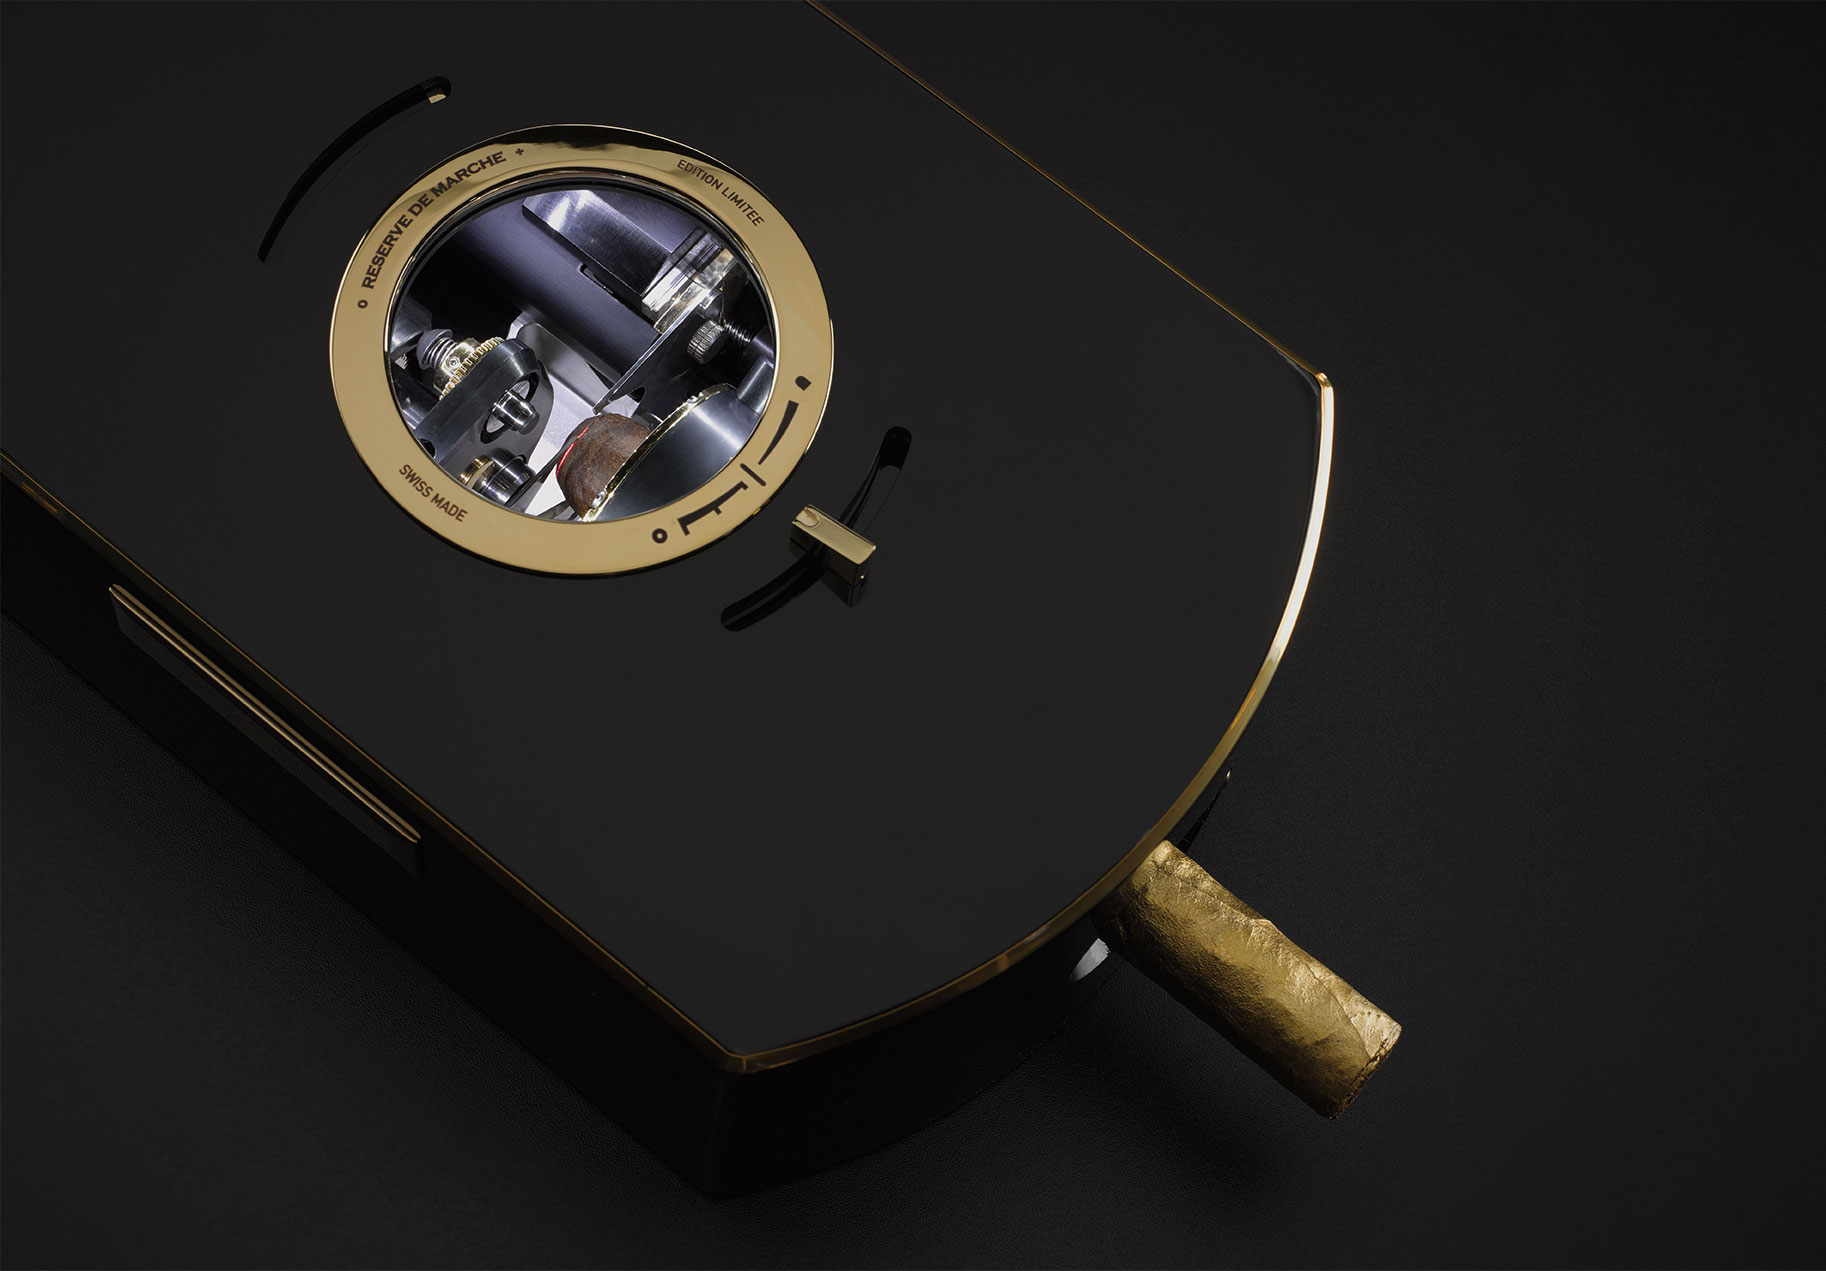 The cigar cutter: the client's choice